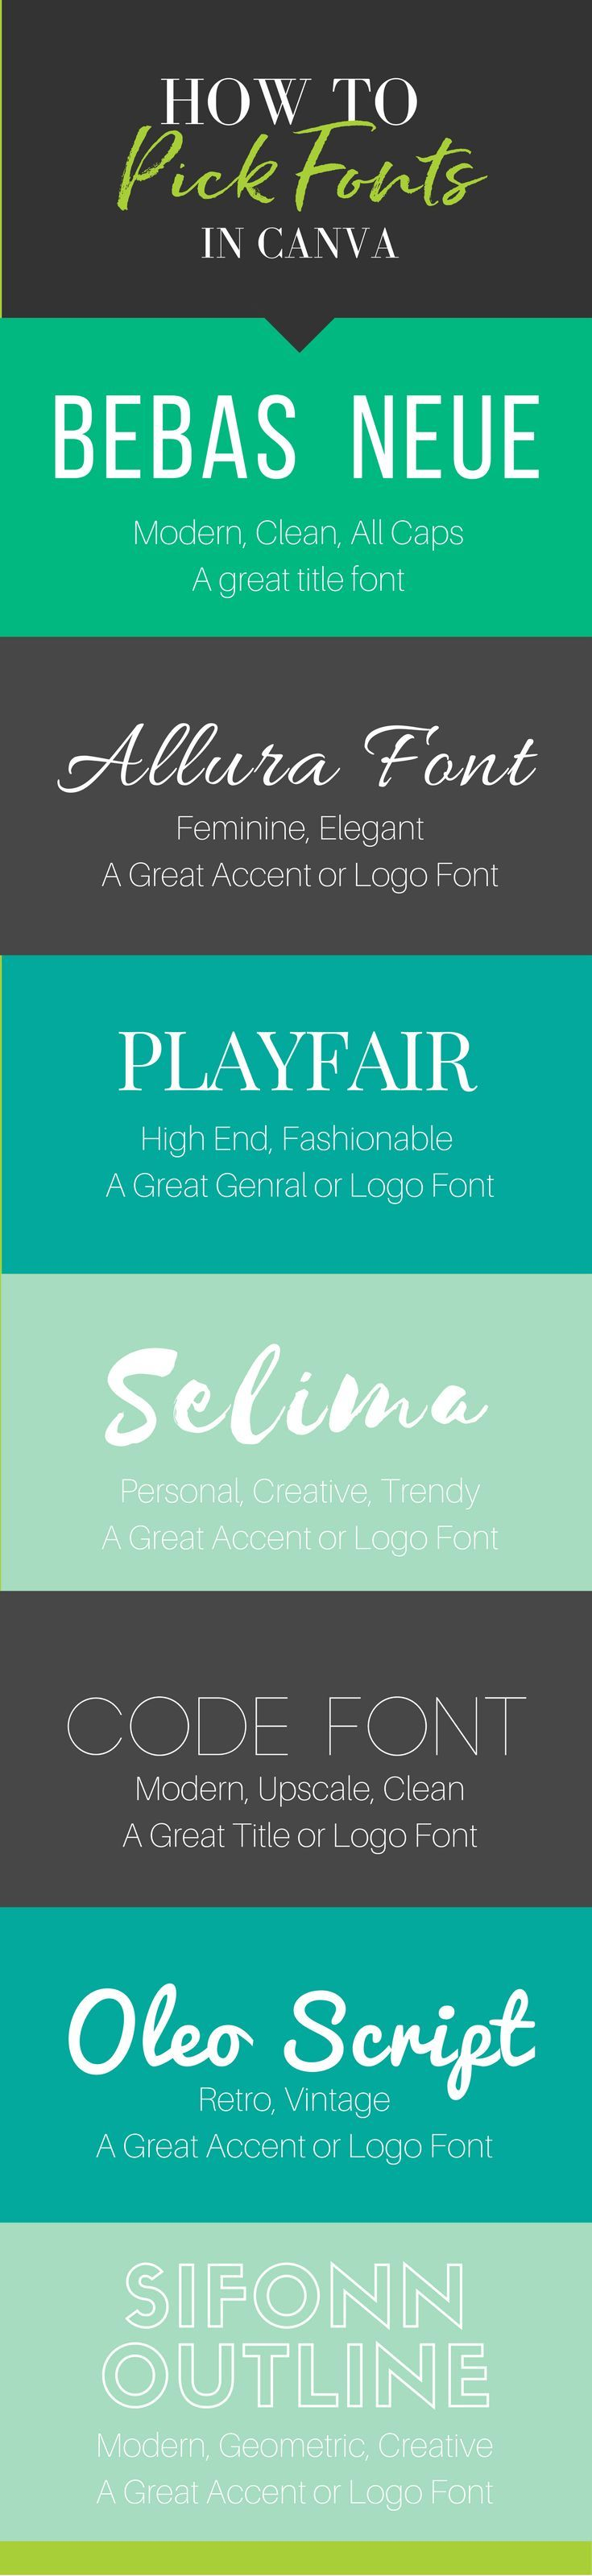 Business infographic : Choosing Fonts For Your Brand In